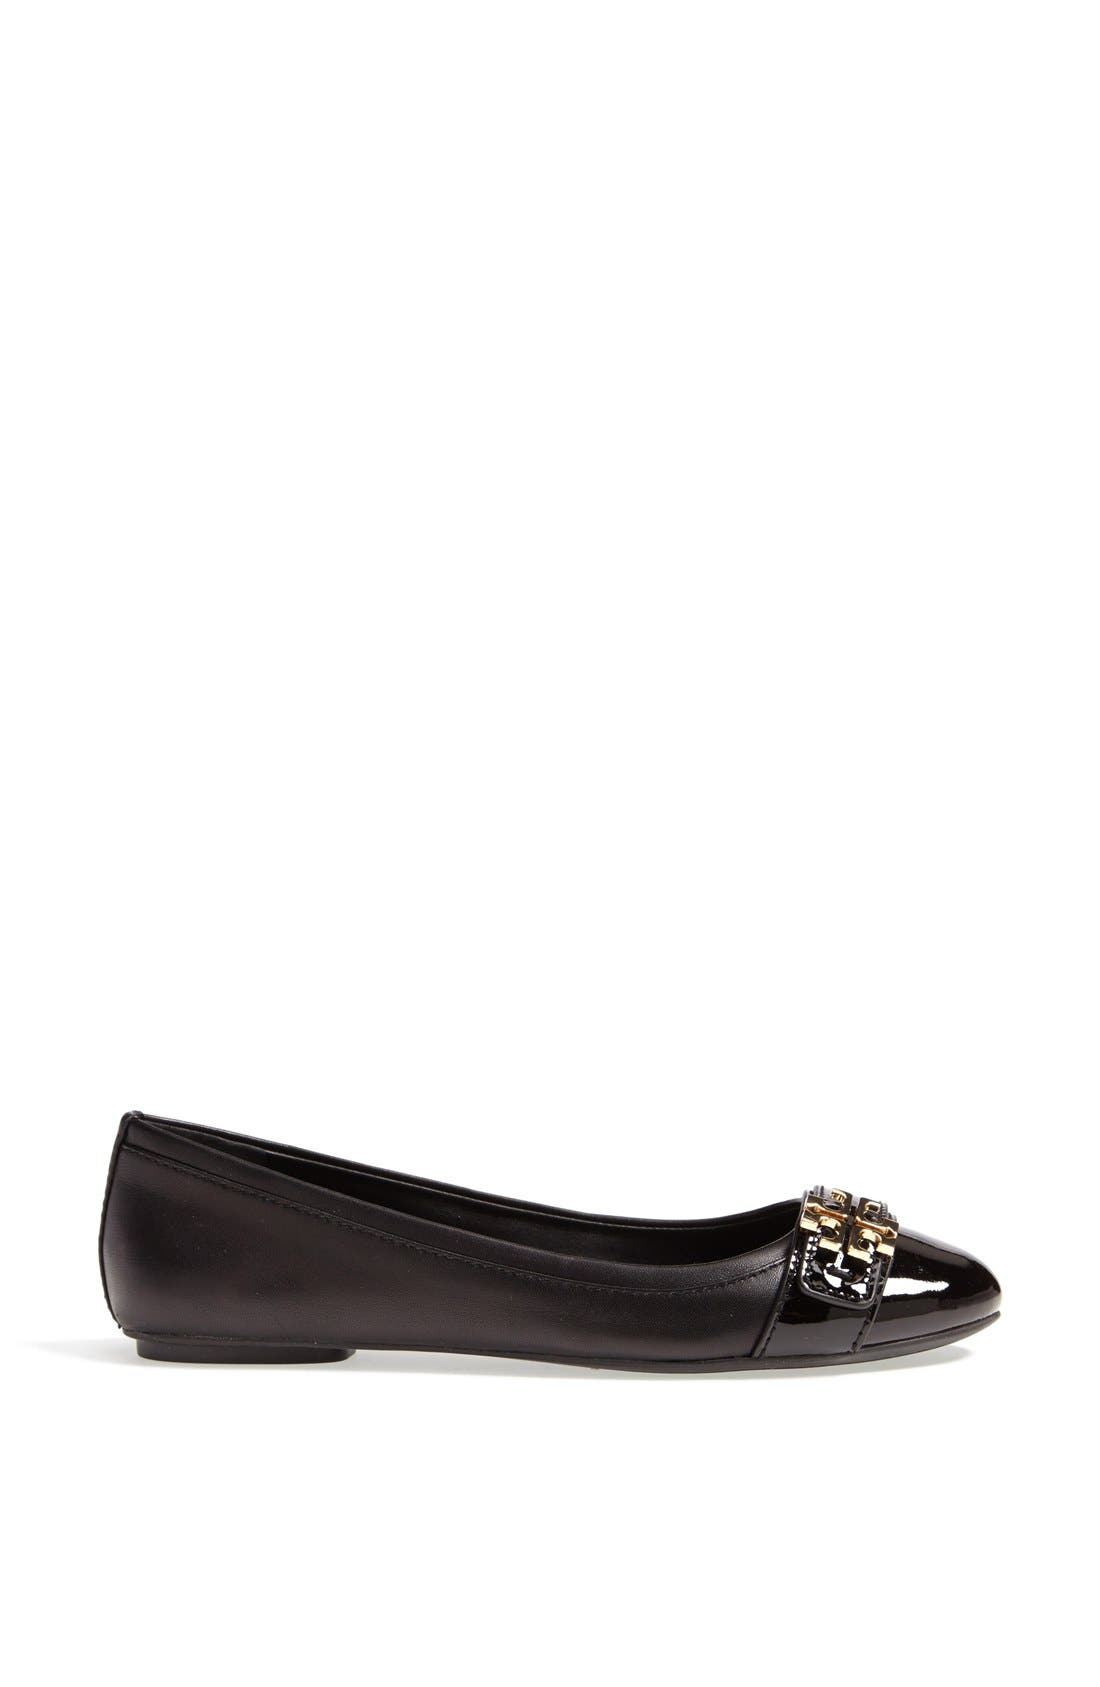 Alternate Image 4  - Tory Burch 'Eloise' Ballet Flat (Women)